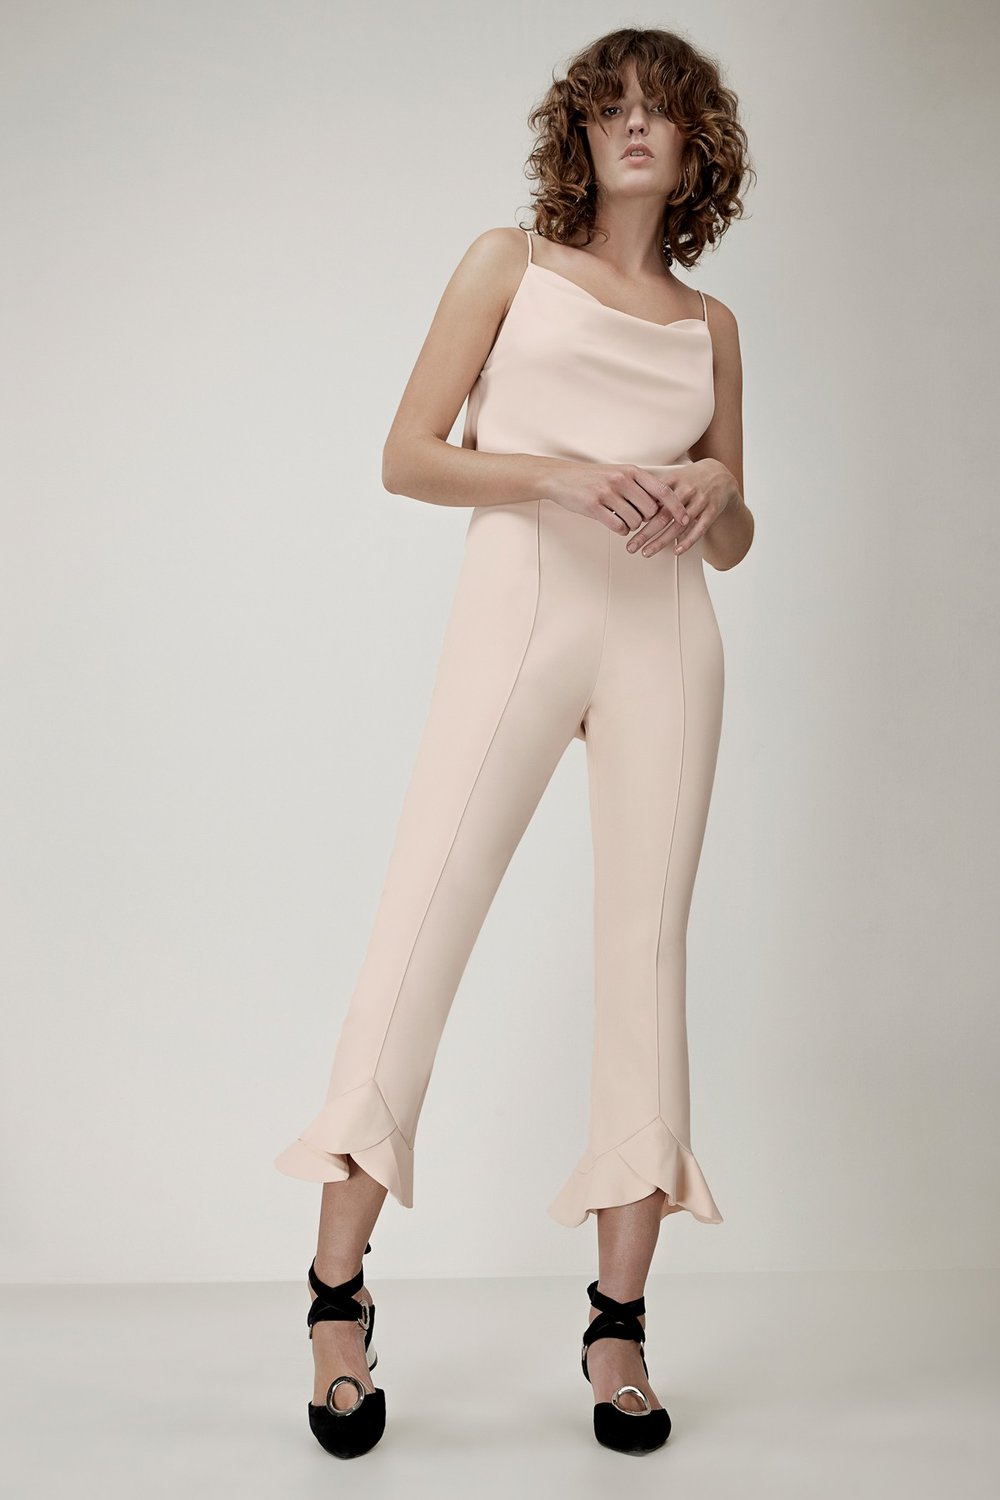 The name of these pants say it all. First impressions mean a lot, and our first impression of these pants is WOW! The sleek blush fabric and ruffle detail are feminine and fashion forward while still being office appropriate. So go head, rock these beauties 9-5 during the week with a smart blazer and pair them with a lightweight knit on the weekend.